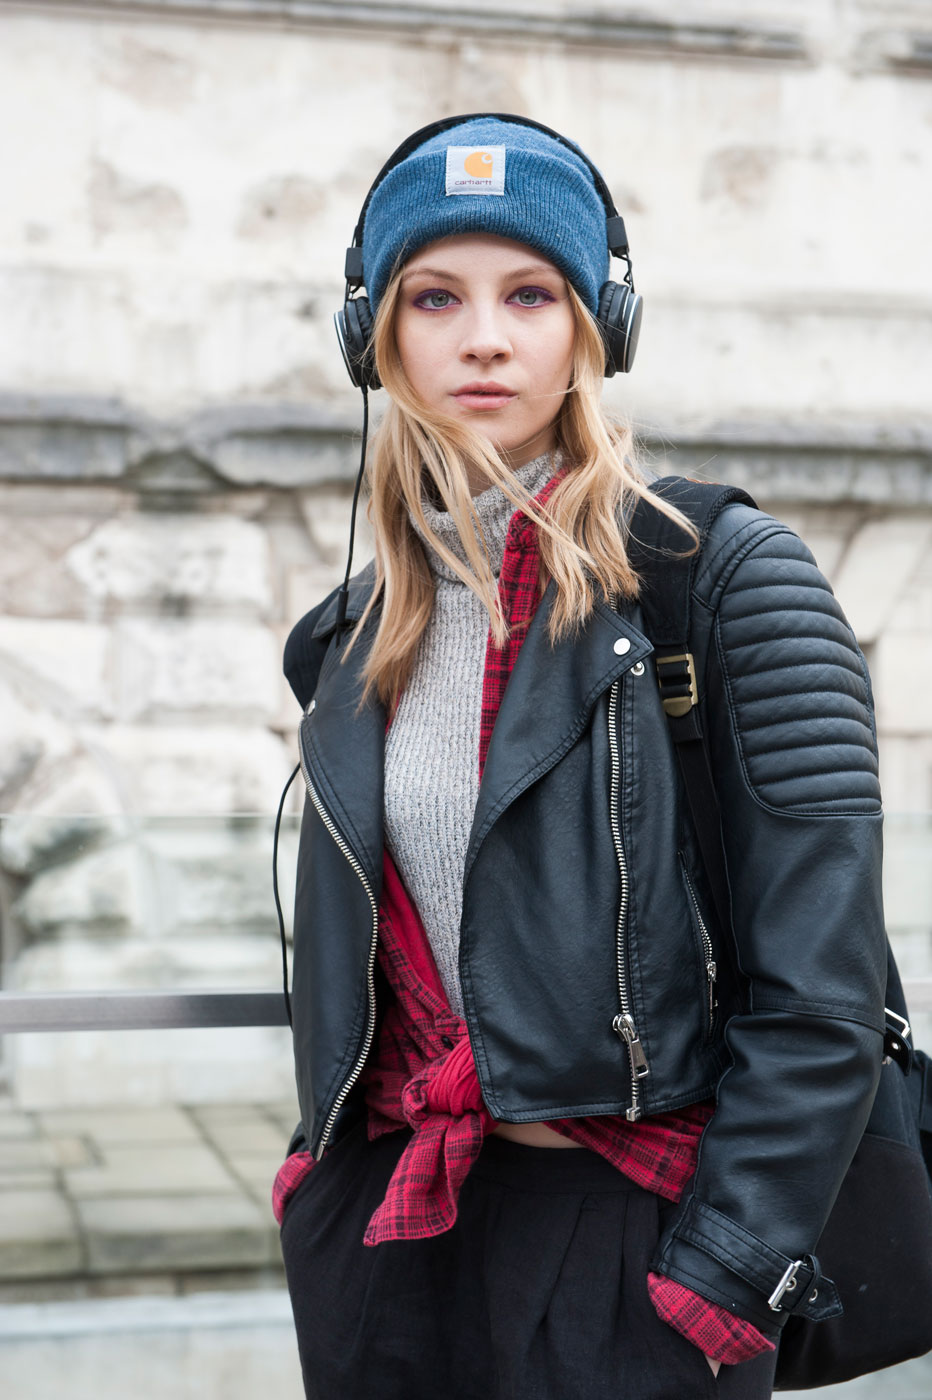 The Best Of London Fashion Week Street Style 2015 Day 5 The Impression